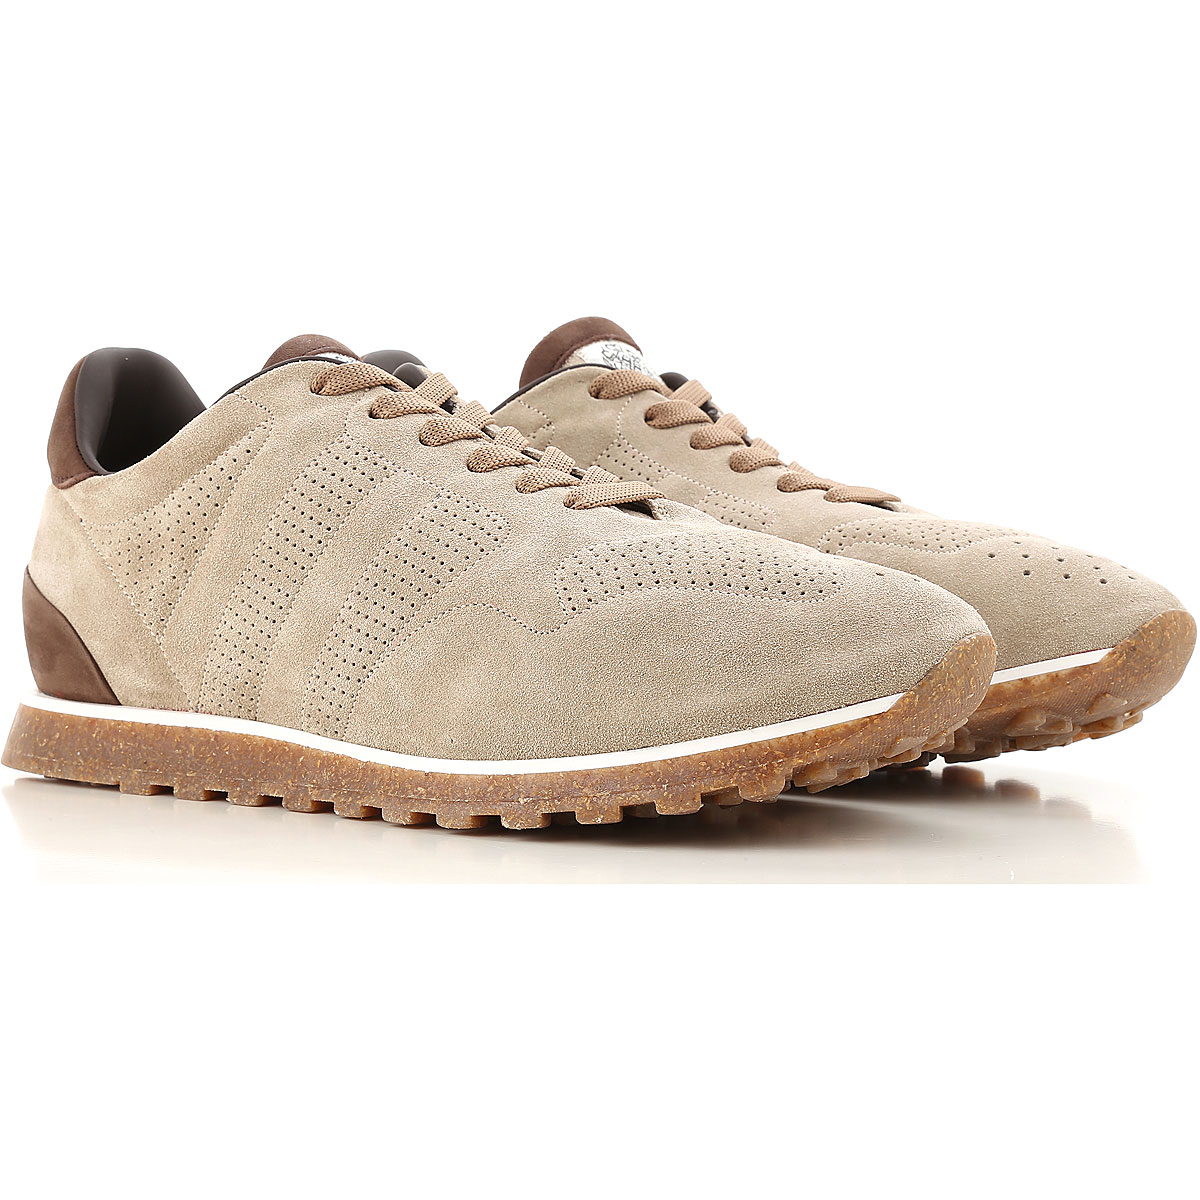 Image of Alberto Fasciani Sneakers for Men On Sale, Beige, Suede leather, 2017, 10 11 7 8 9